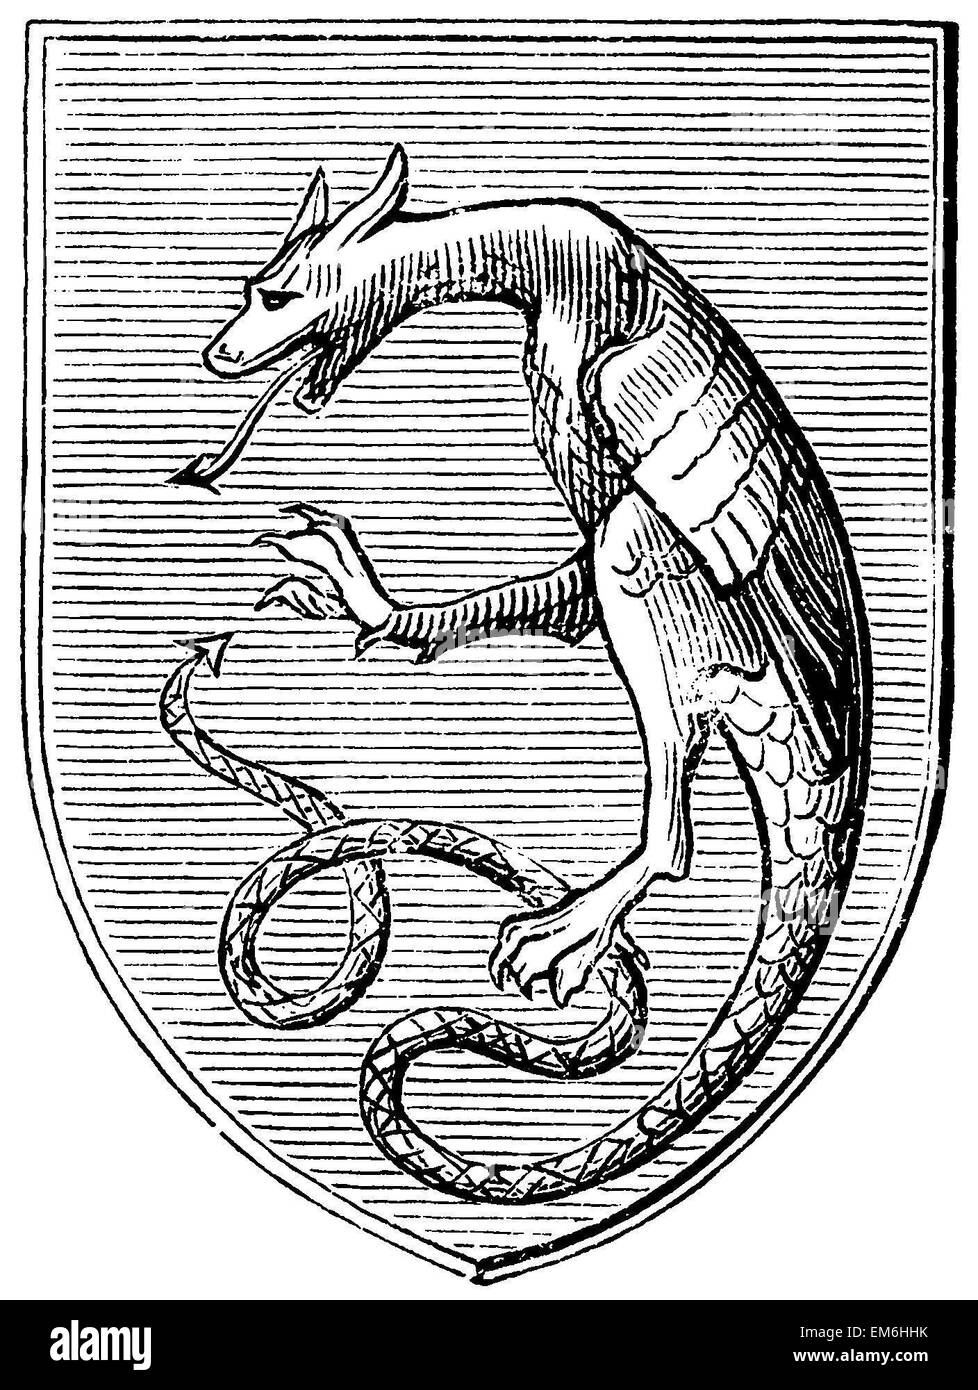 Heraldic Dragon from the early Middle Ages - Stock Image